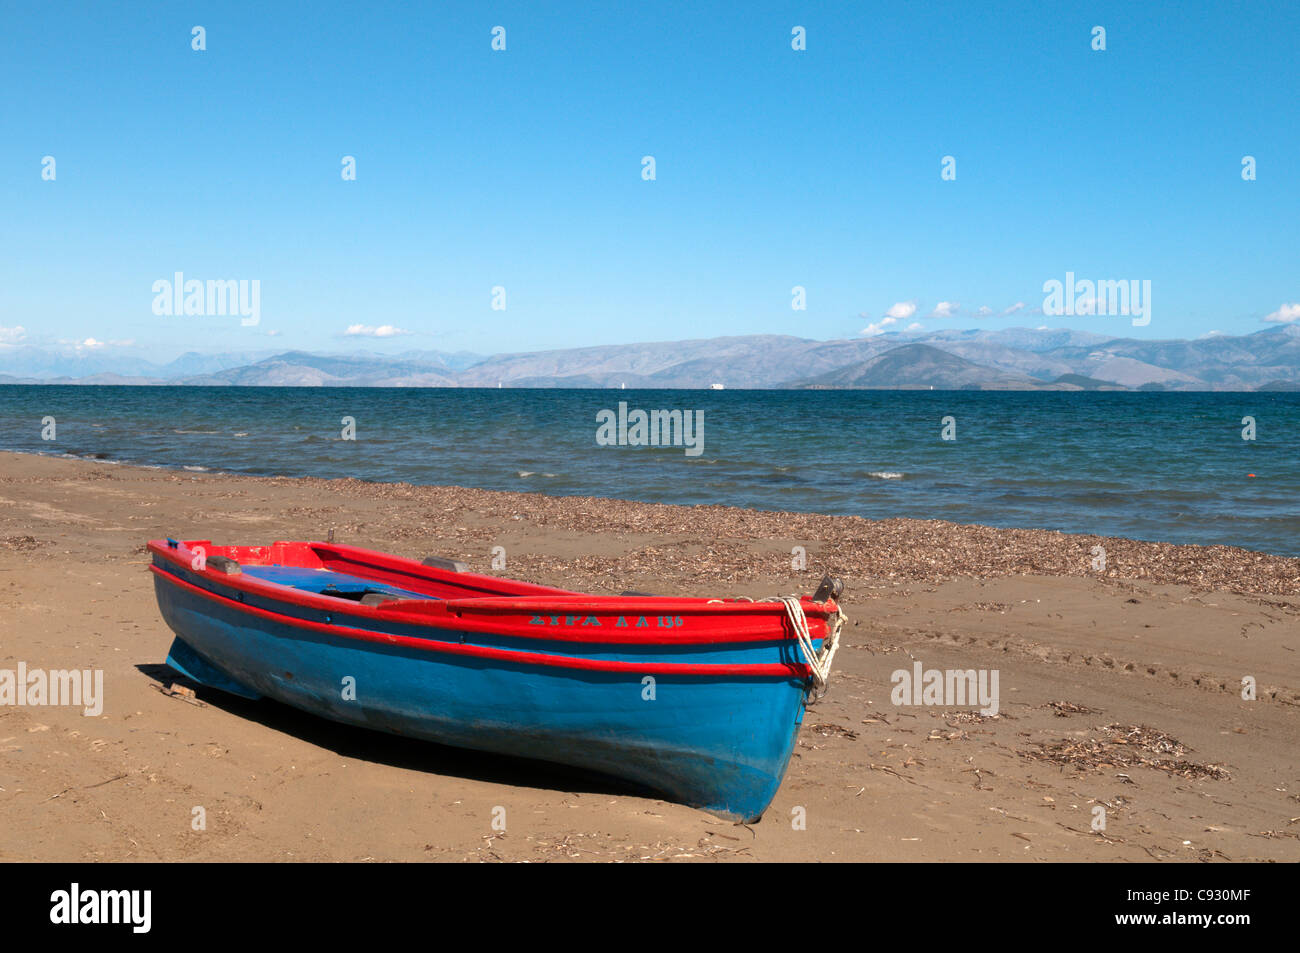 Kavos is a former fishing village on the island of Corfu opposite the Greek mainland. It is a lively resort popular - Stock Image